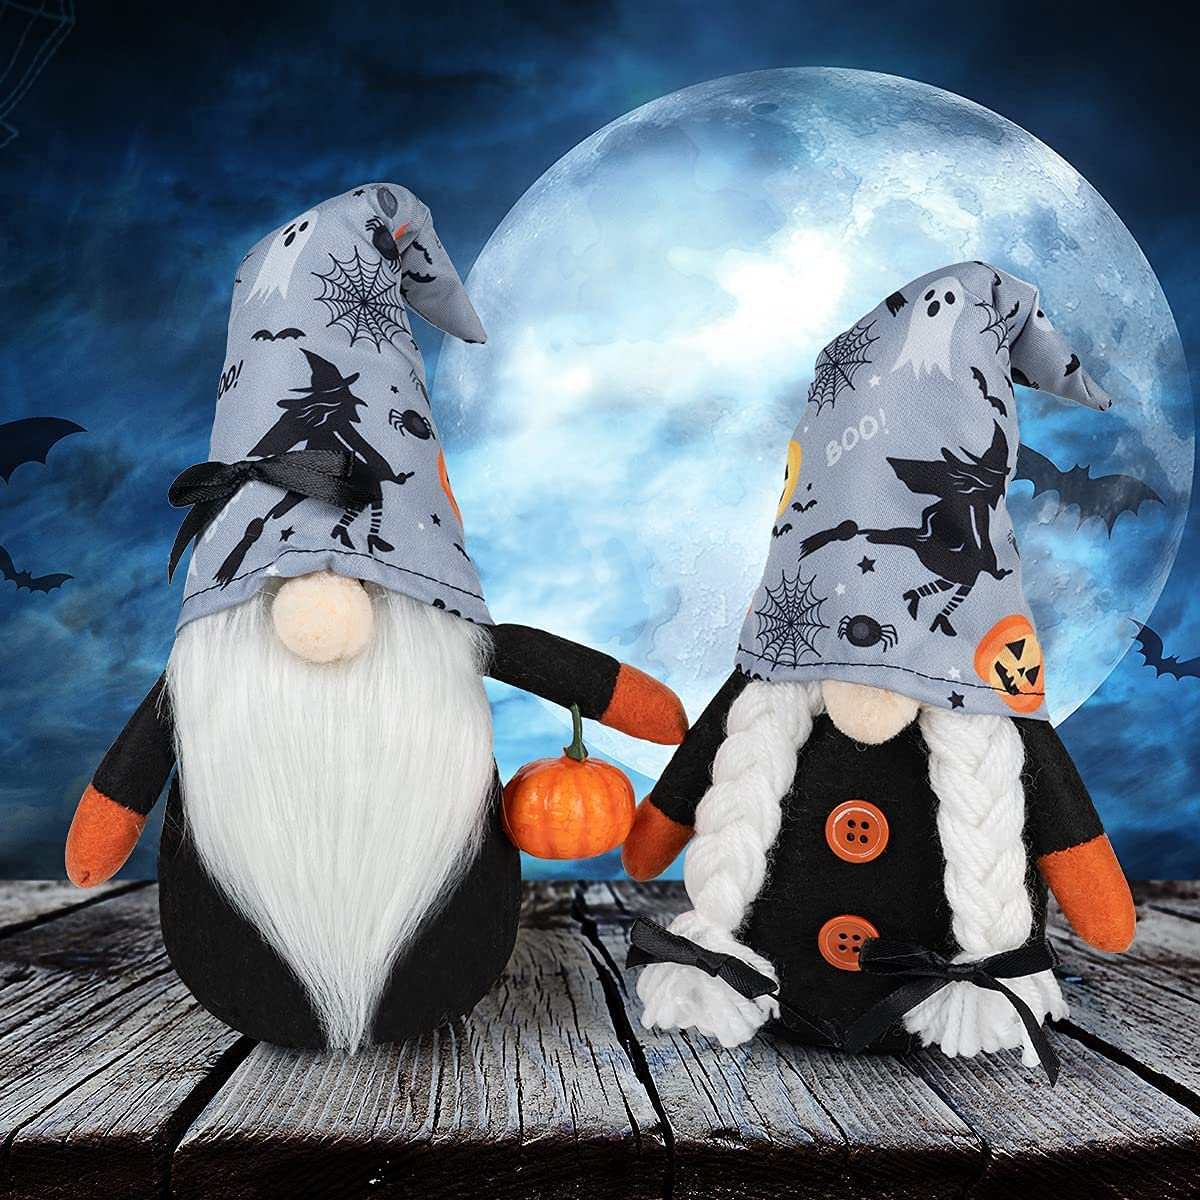 Docuwee 2 PCS Halloween Gnome Doll, Handmade Plush Small Gnomes Ornaments Faceless Accessories Plush Standing Dolls, Small Gnome Spring Decor Household Holiday Decoration Toys Gifts